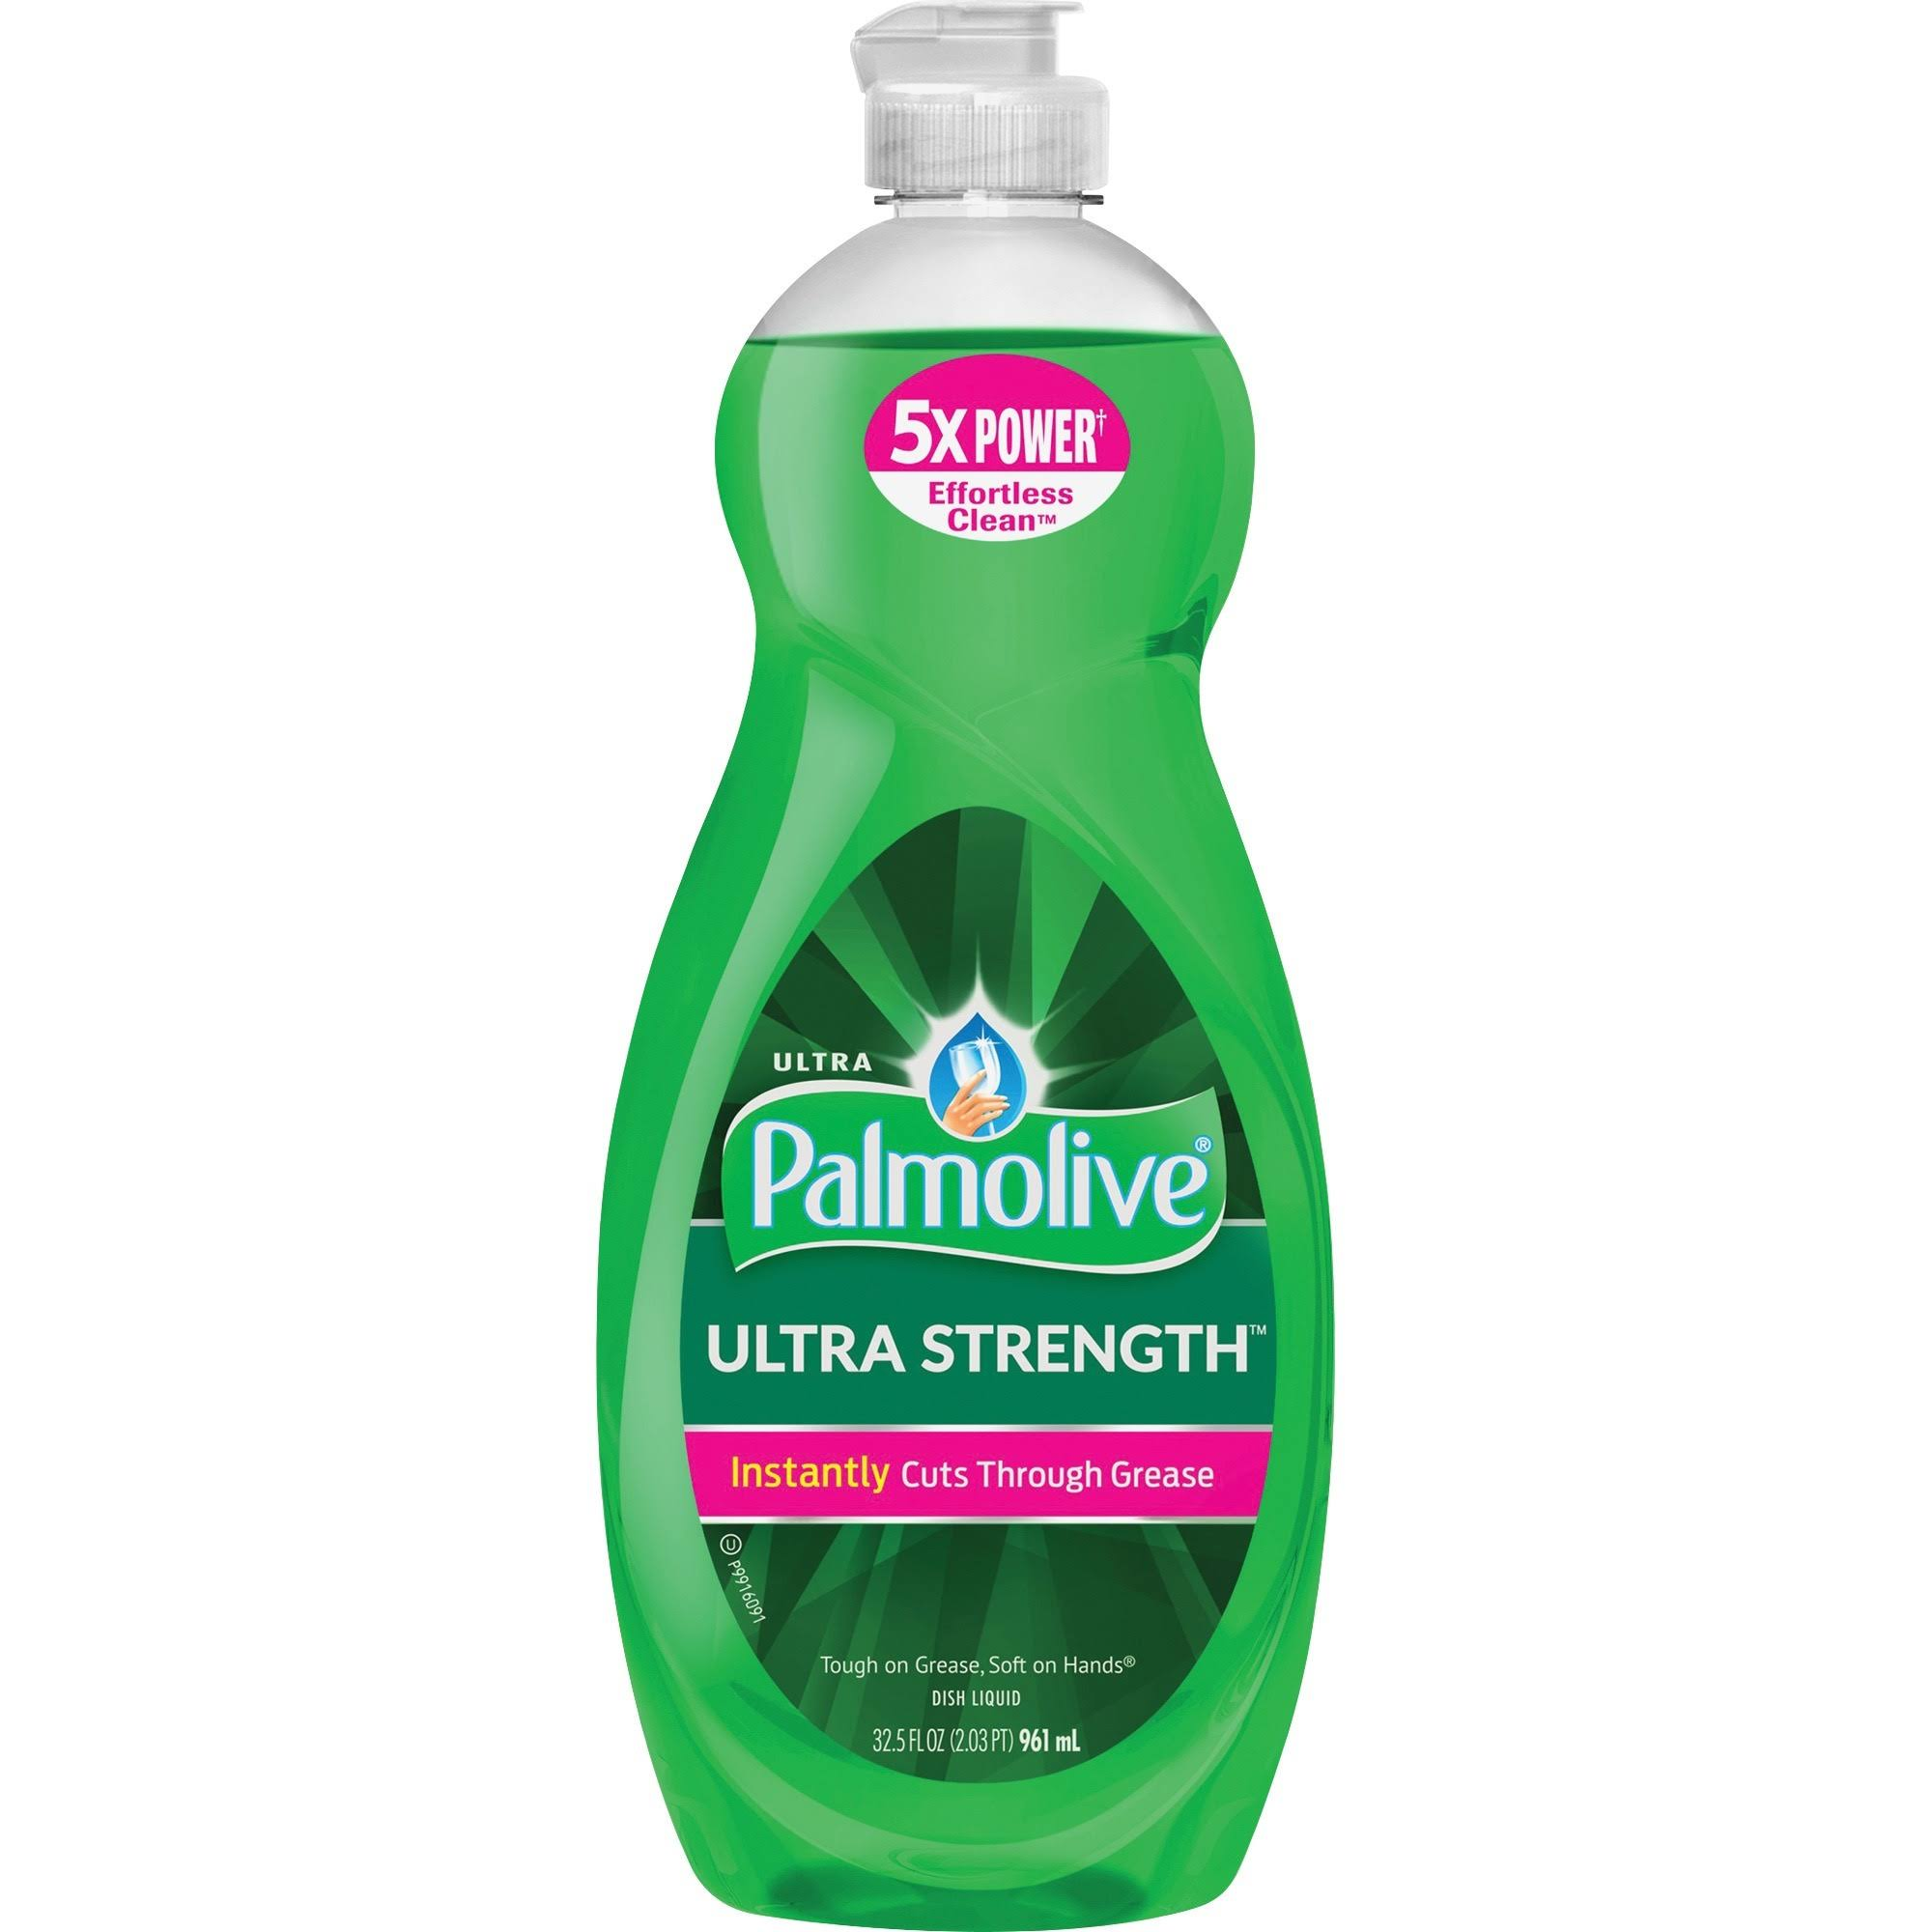 Palmolive Ultra Strength Dish Liquid - 32.5oz